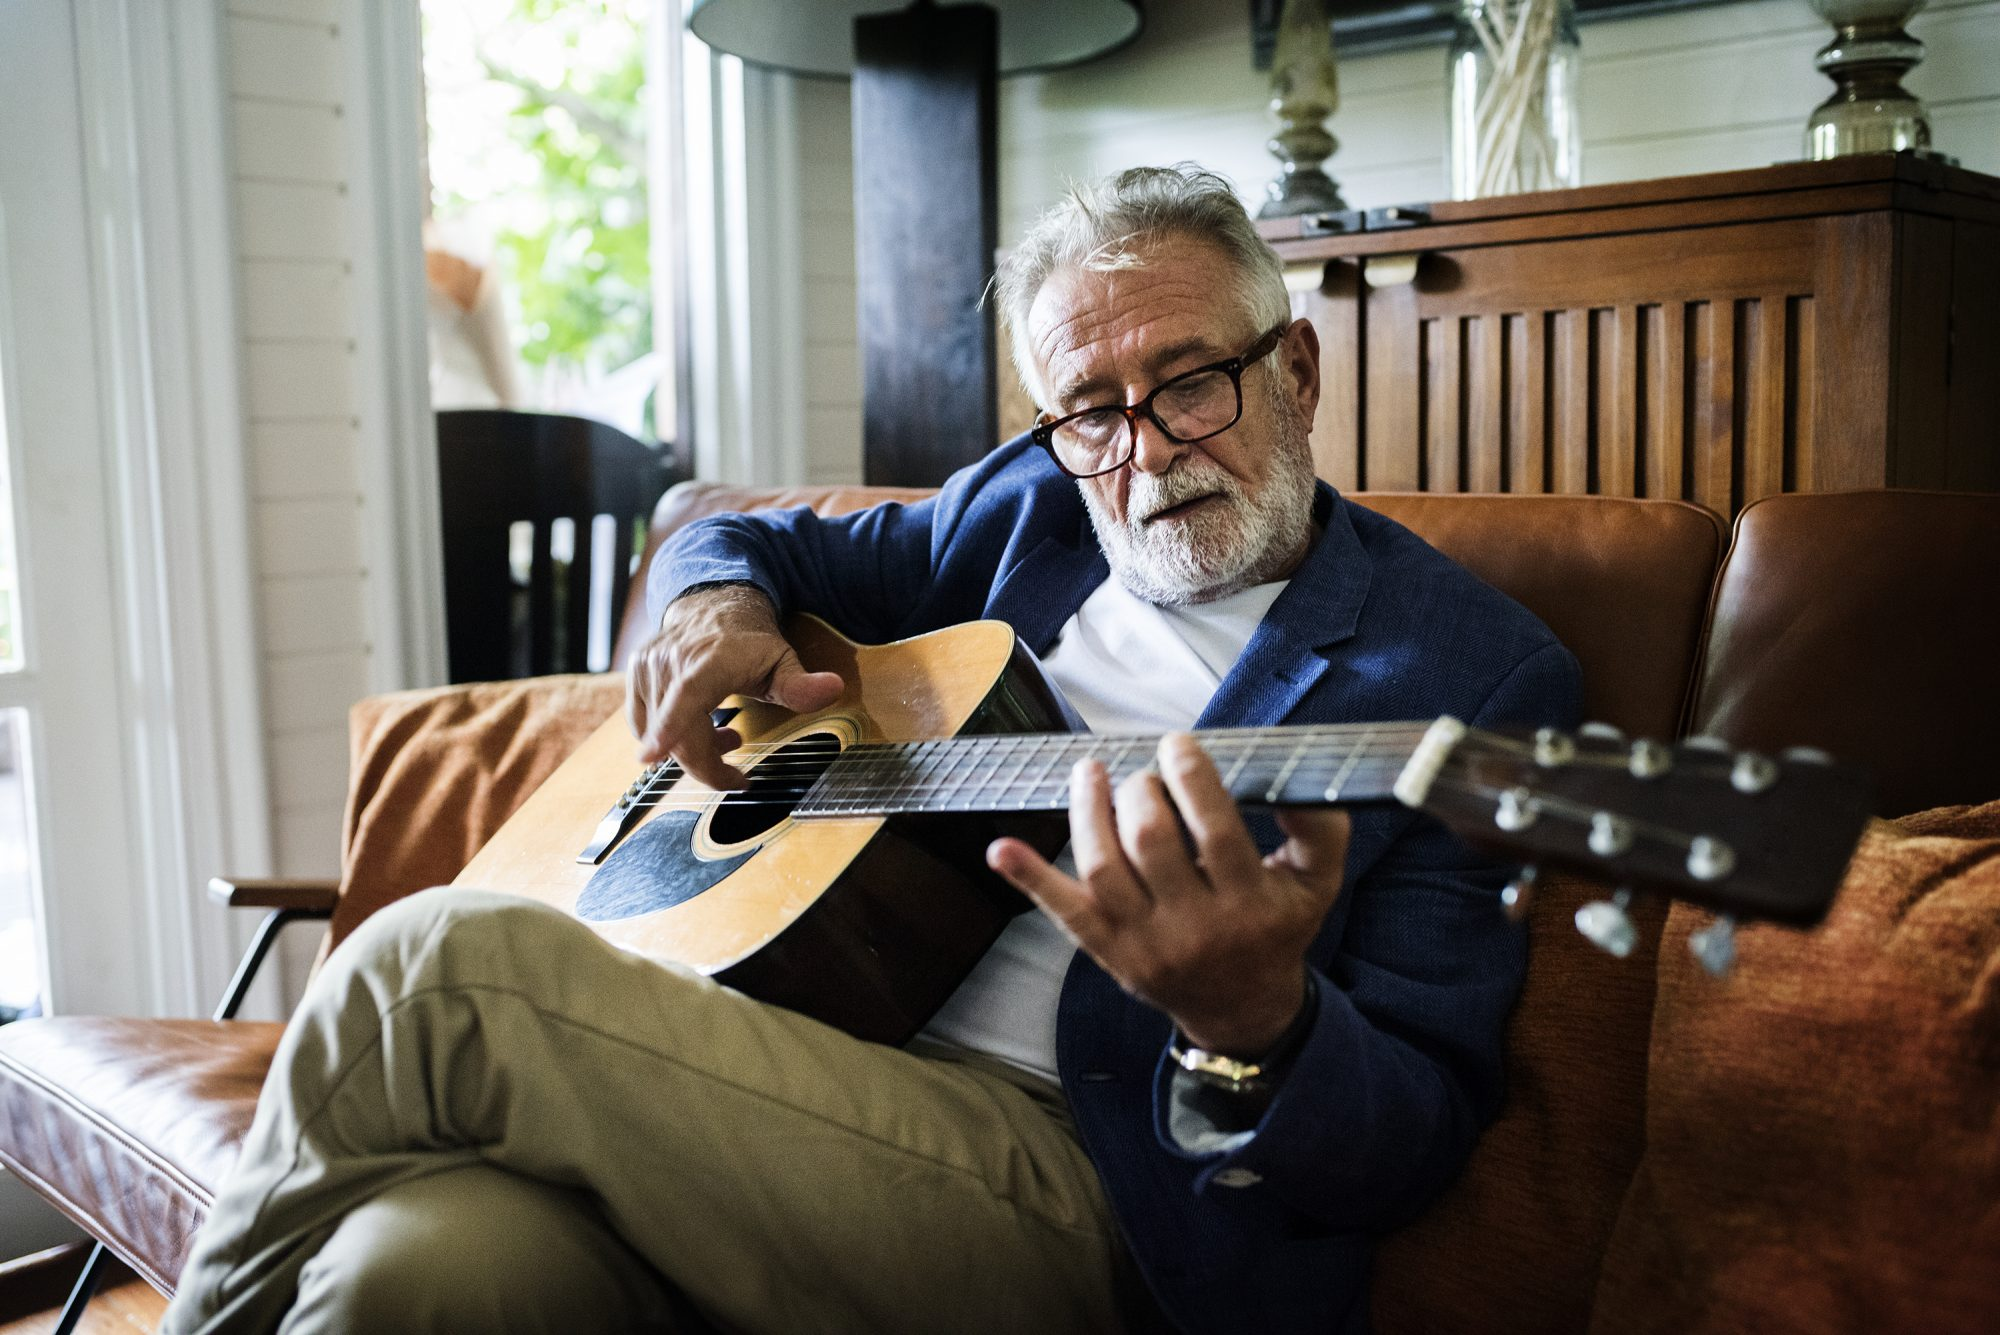 Mature man playing the guitar in his home.